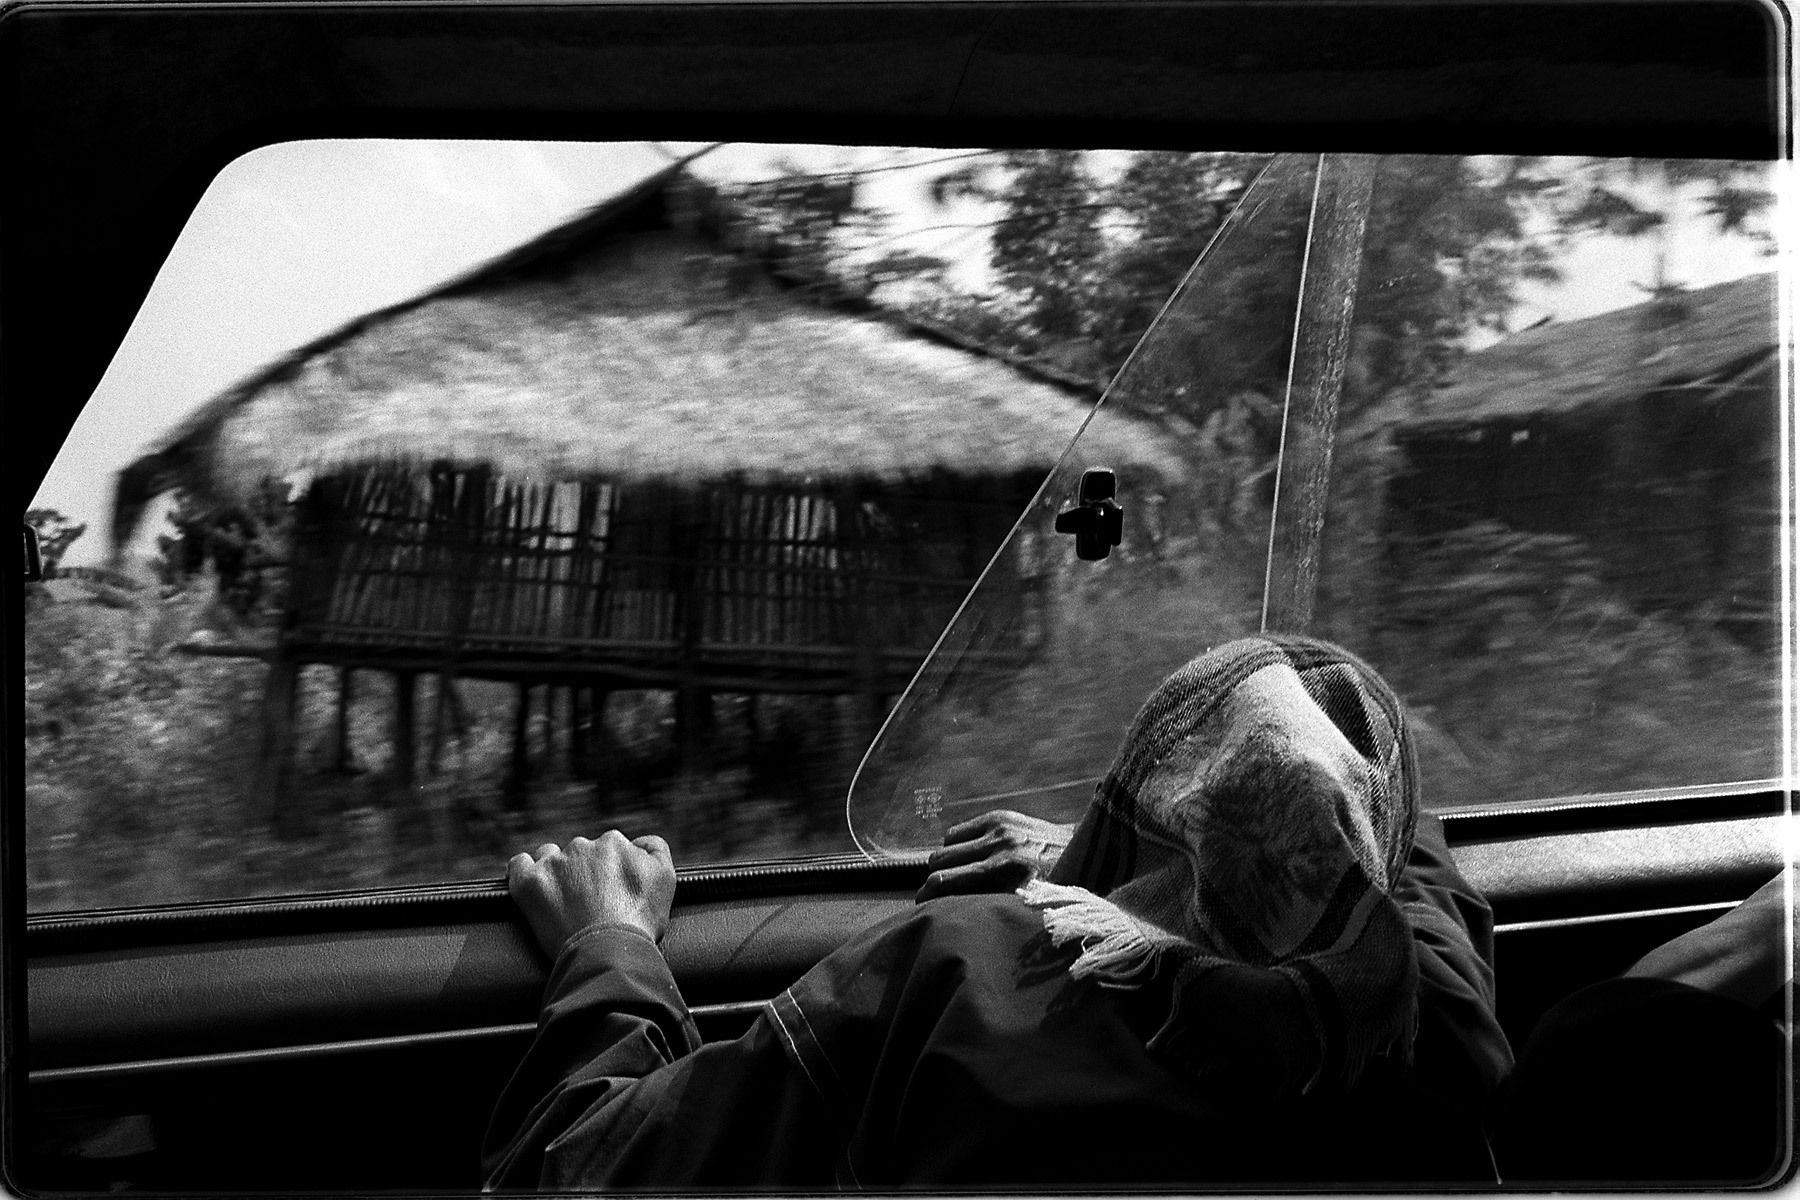 Tucked in Thailand's northern border Maesalong is a place of contrasts. It's a freedom mecca from it's oppressive neighbors in China, Laos and Burma. Caught between are the Akha tribal people who have been forced from their nomadic tradition because of politics and strict borders. This photo: Ahbu travels in the back of a truck from her home in Maesalong, Thailand to Chiang Rei to receive treatments for her opium addiction. Having ridden in an automobile only once in her life, the hour-long journey has made her sick.